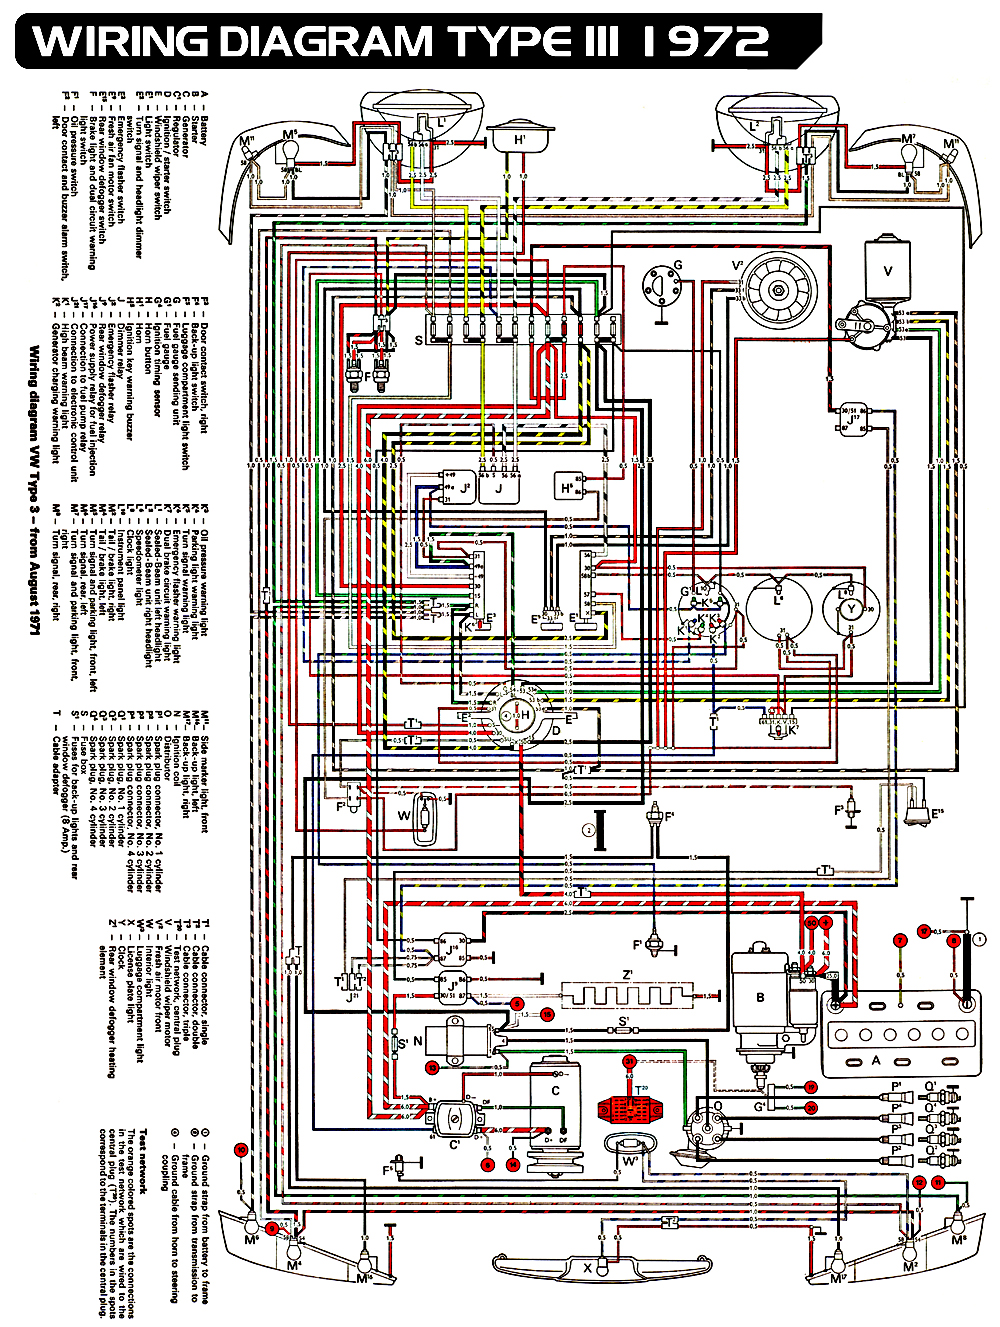 Diagram 1964 Vw Wiring Diagram Full Version Hd Quality Wiring Diagram Pvdiagramxbowes Ufficiestudi It